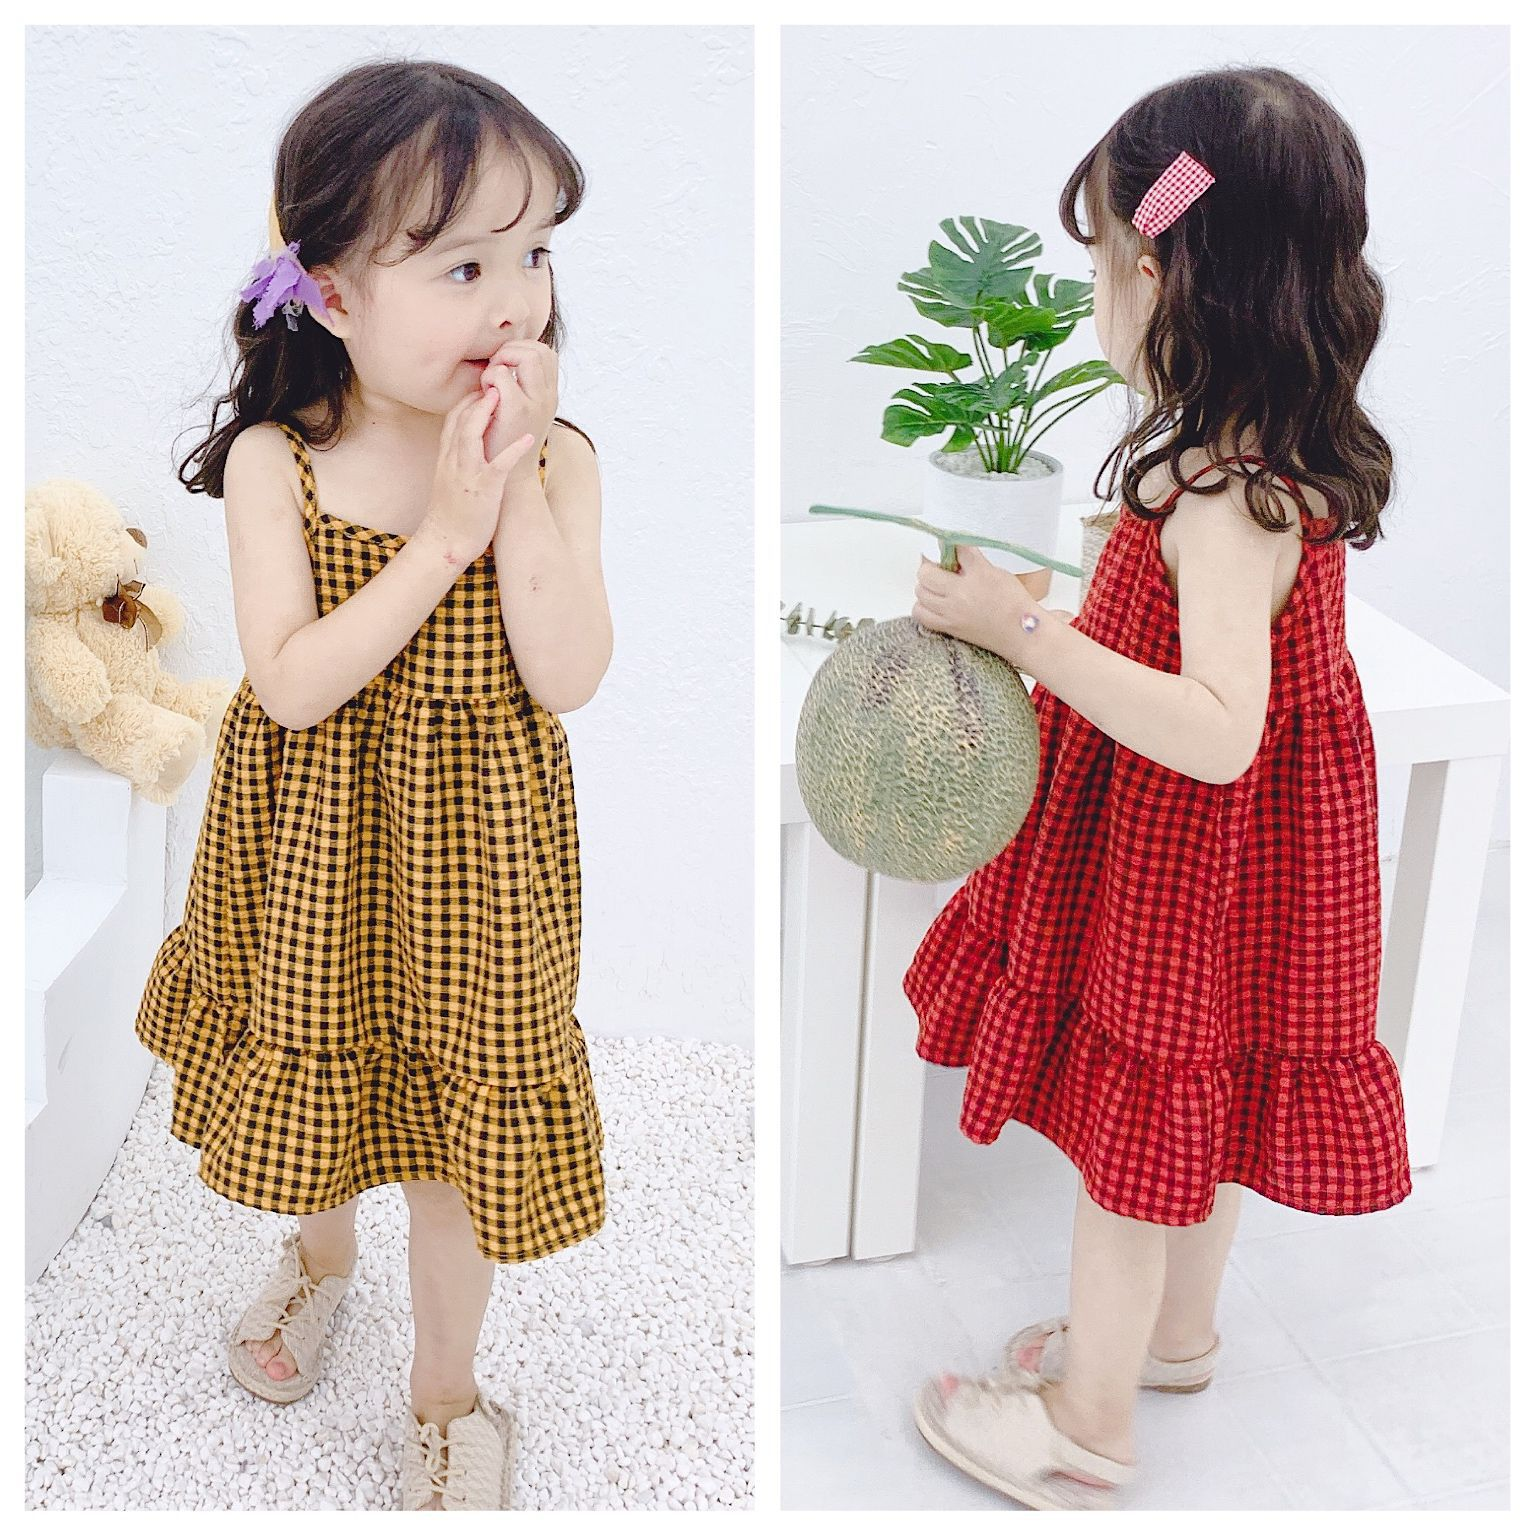 Children's Summer   dress   2009 New Kids'korean Chequered Suspended   Dresses   Baby   Girl   Clothes   Flower     Girl     Dresses